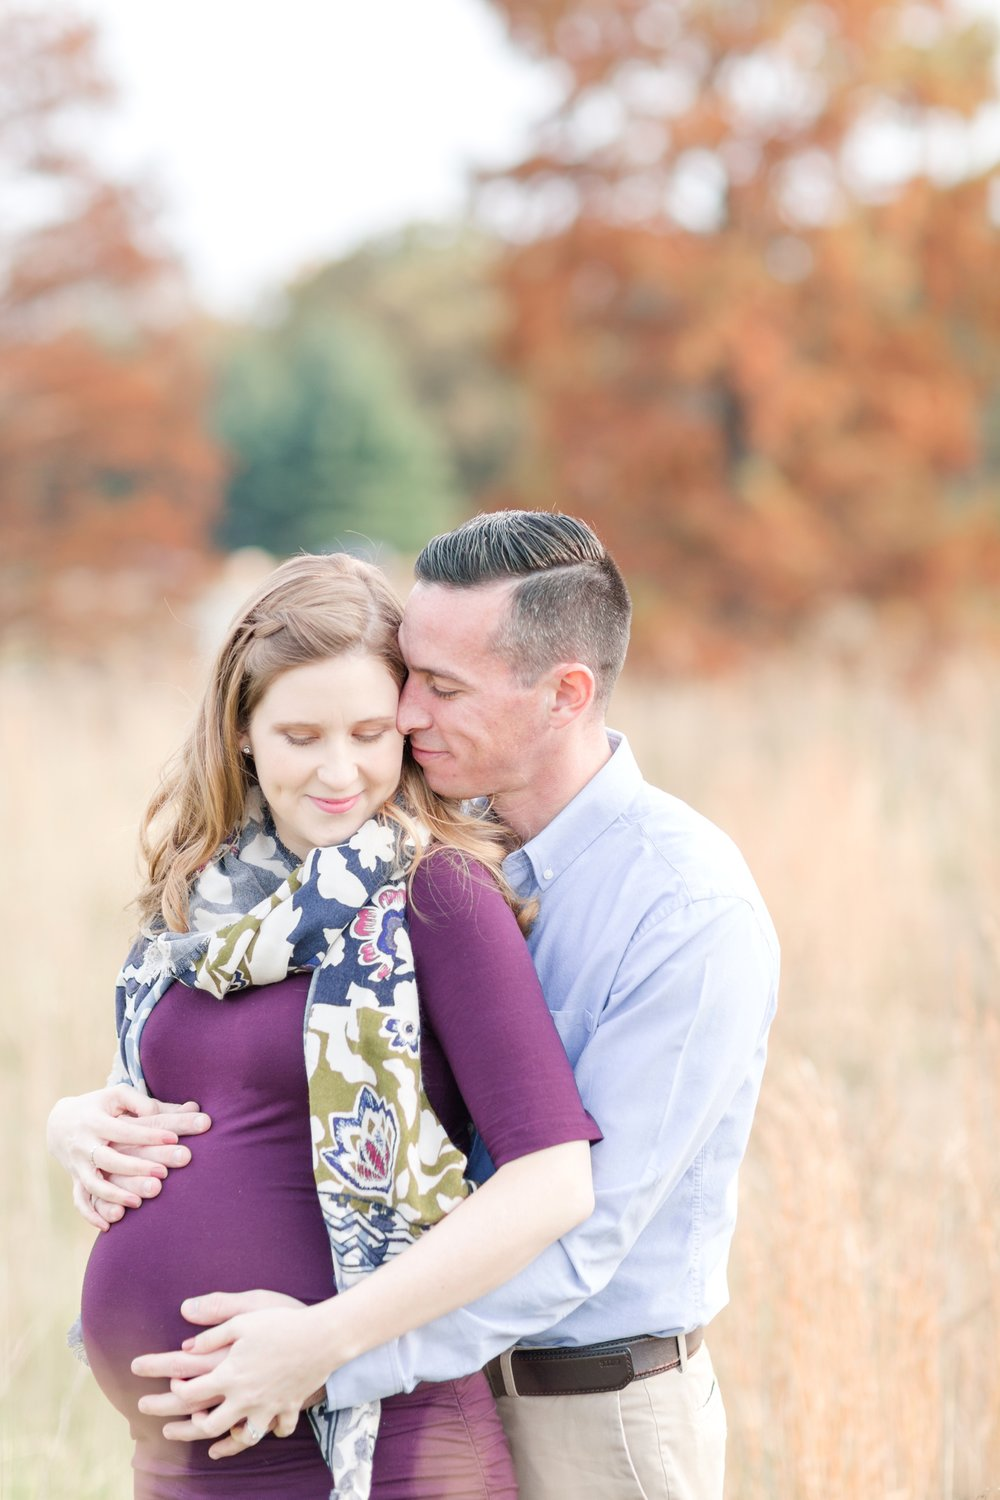 Meg and Paul Maternity-77_maryland-and-virginia-family-maternity-newborn-photographer-anna-grace-photography-photo.jpg